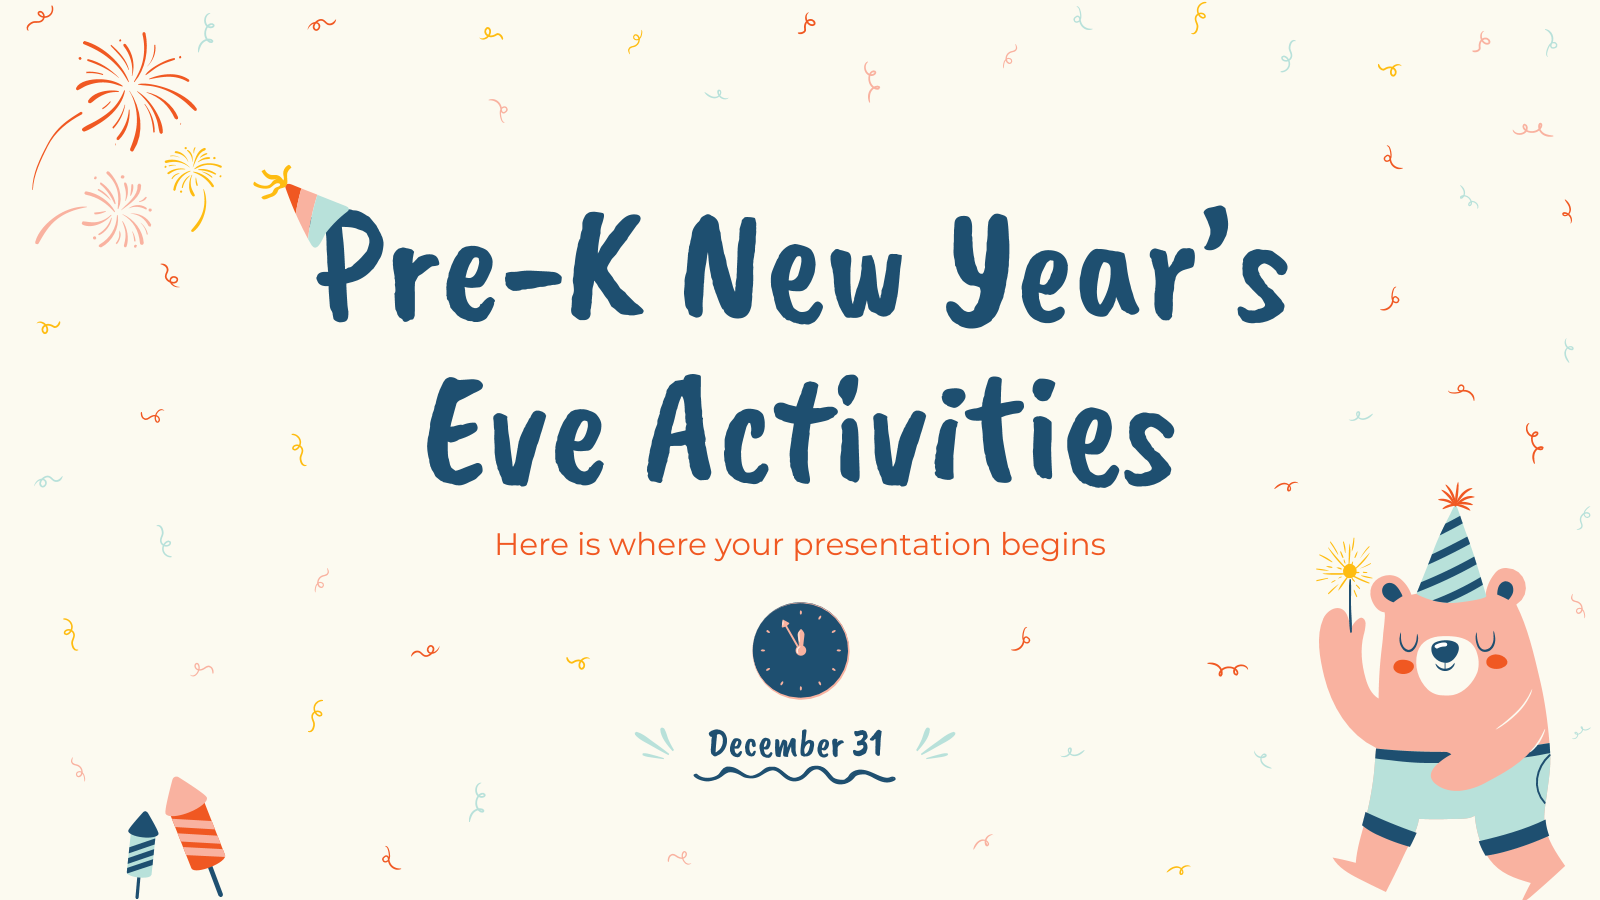 Pre-K New Year's Eve Activities presentation template